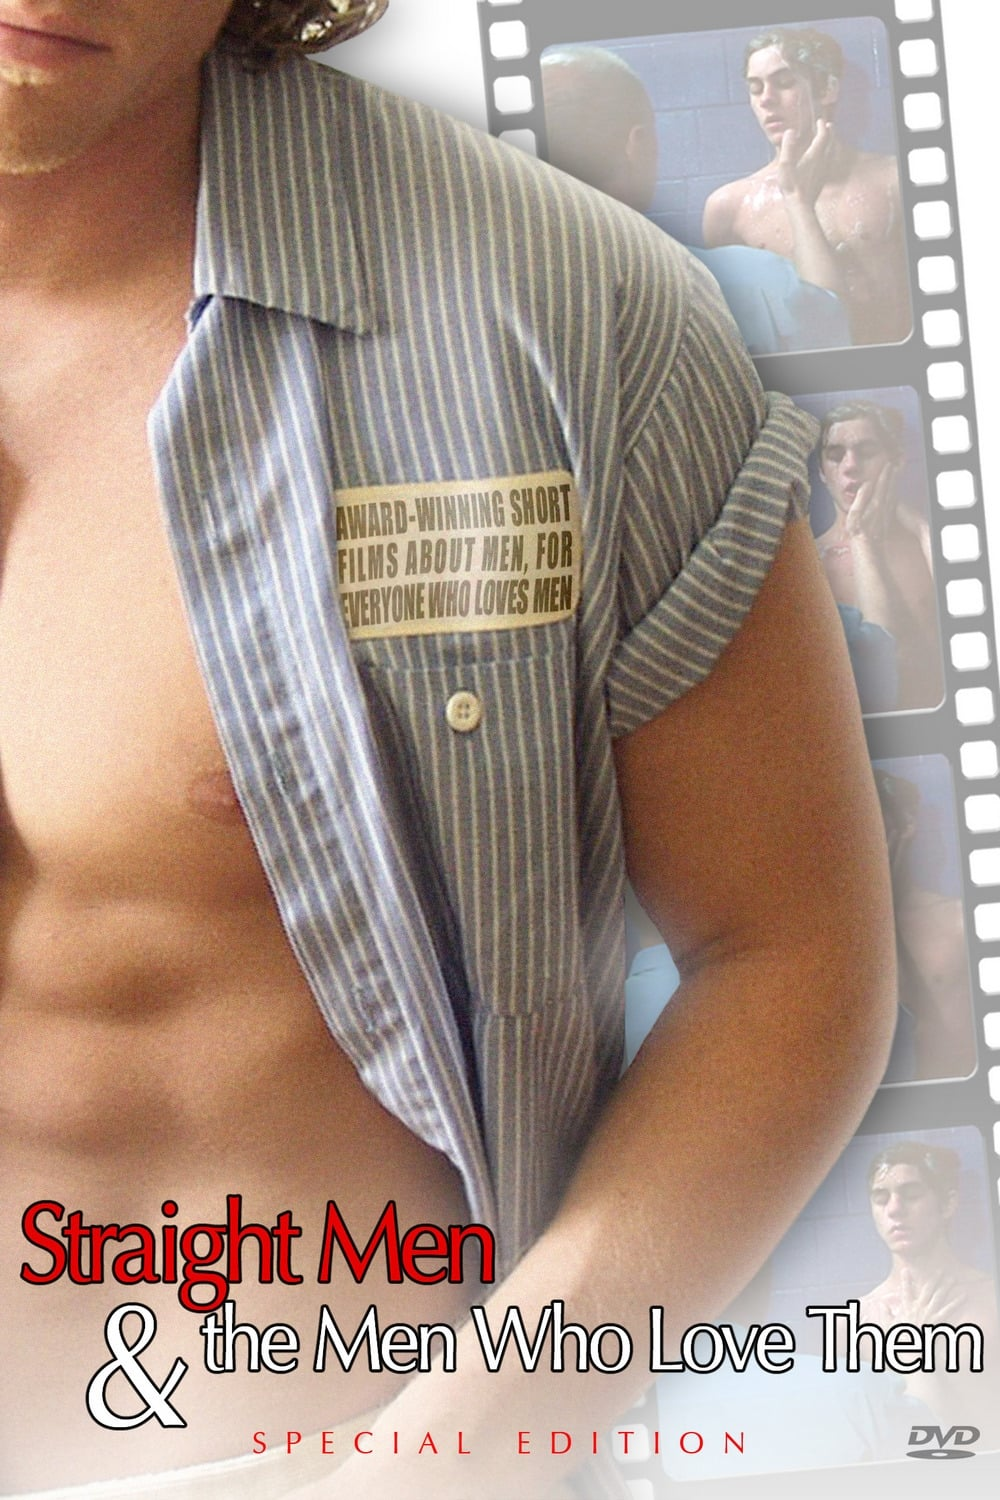 Straight Men & the Men Who Love Them on FREECABLE TV